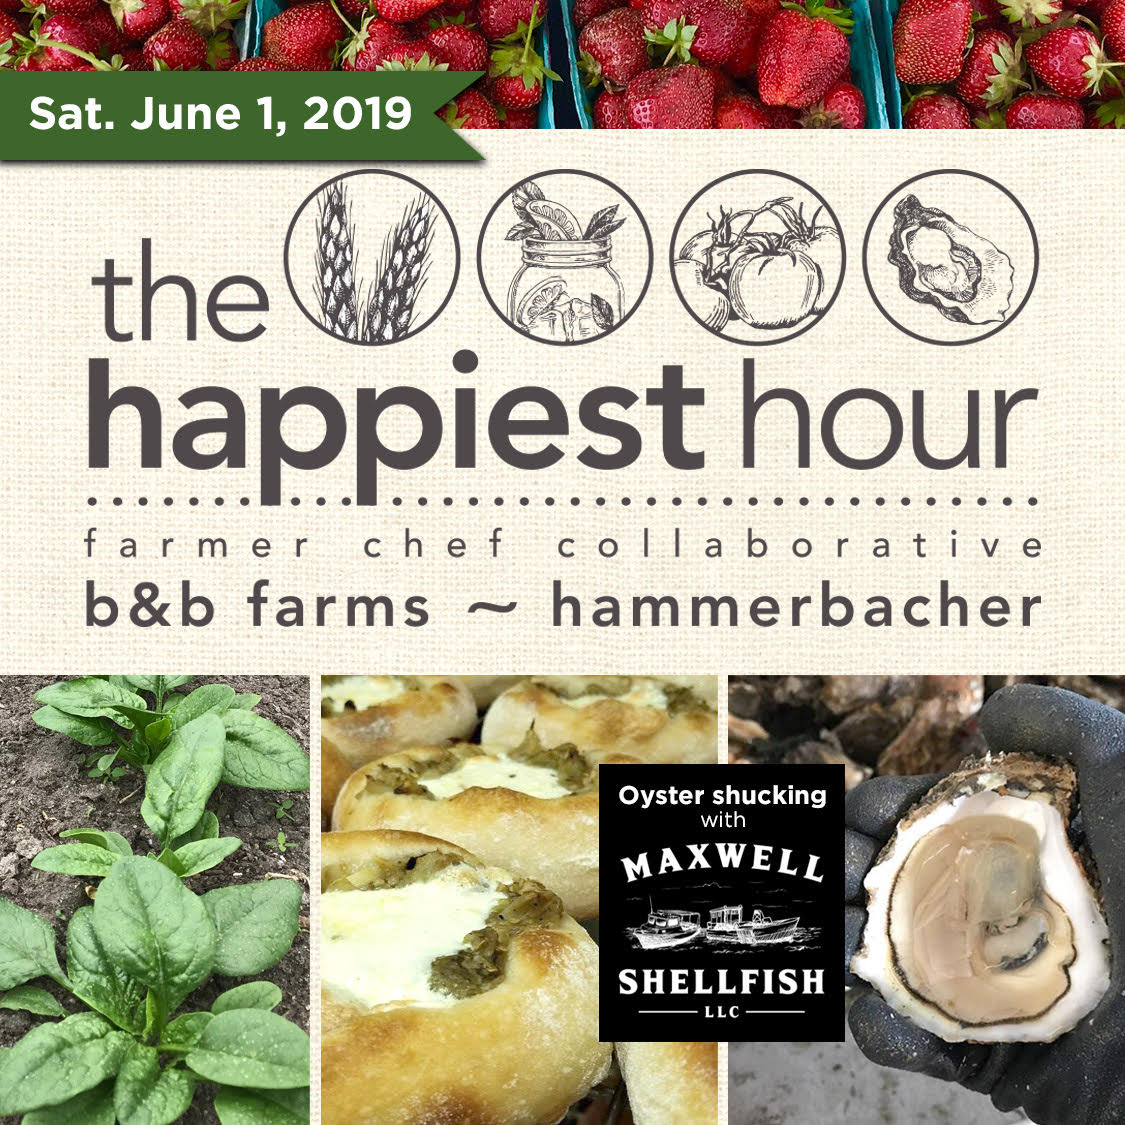 June 1st - The Happiest Hour - 4:00 PM - 7:00 PM